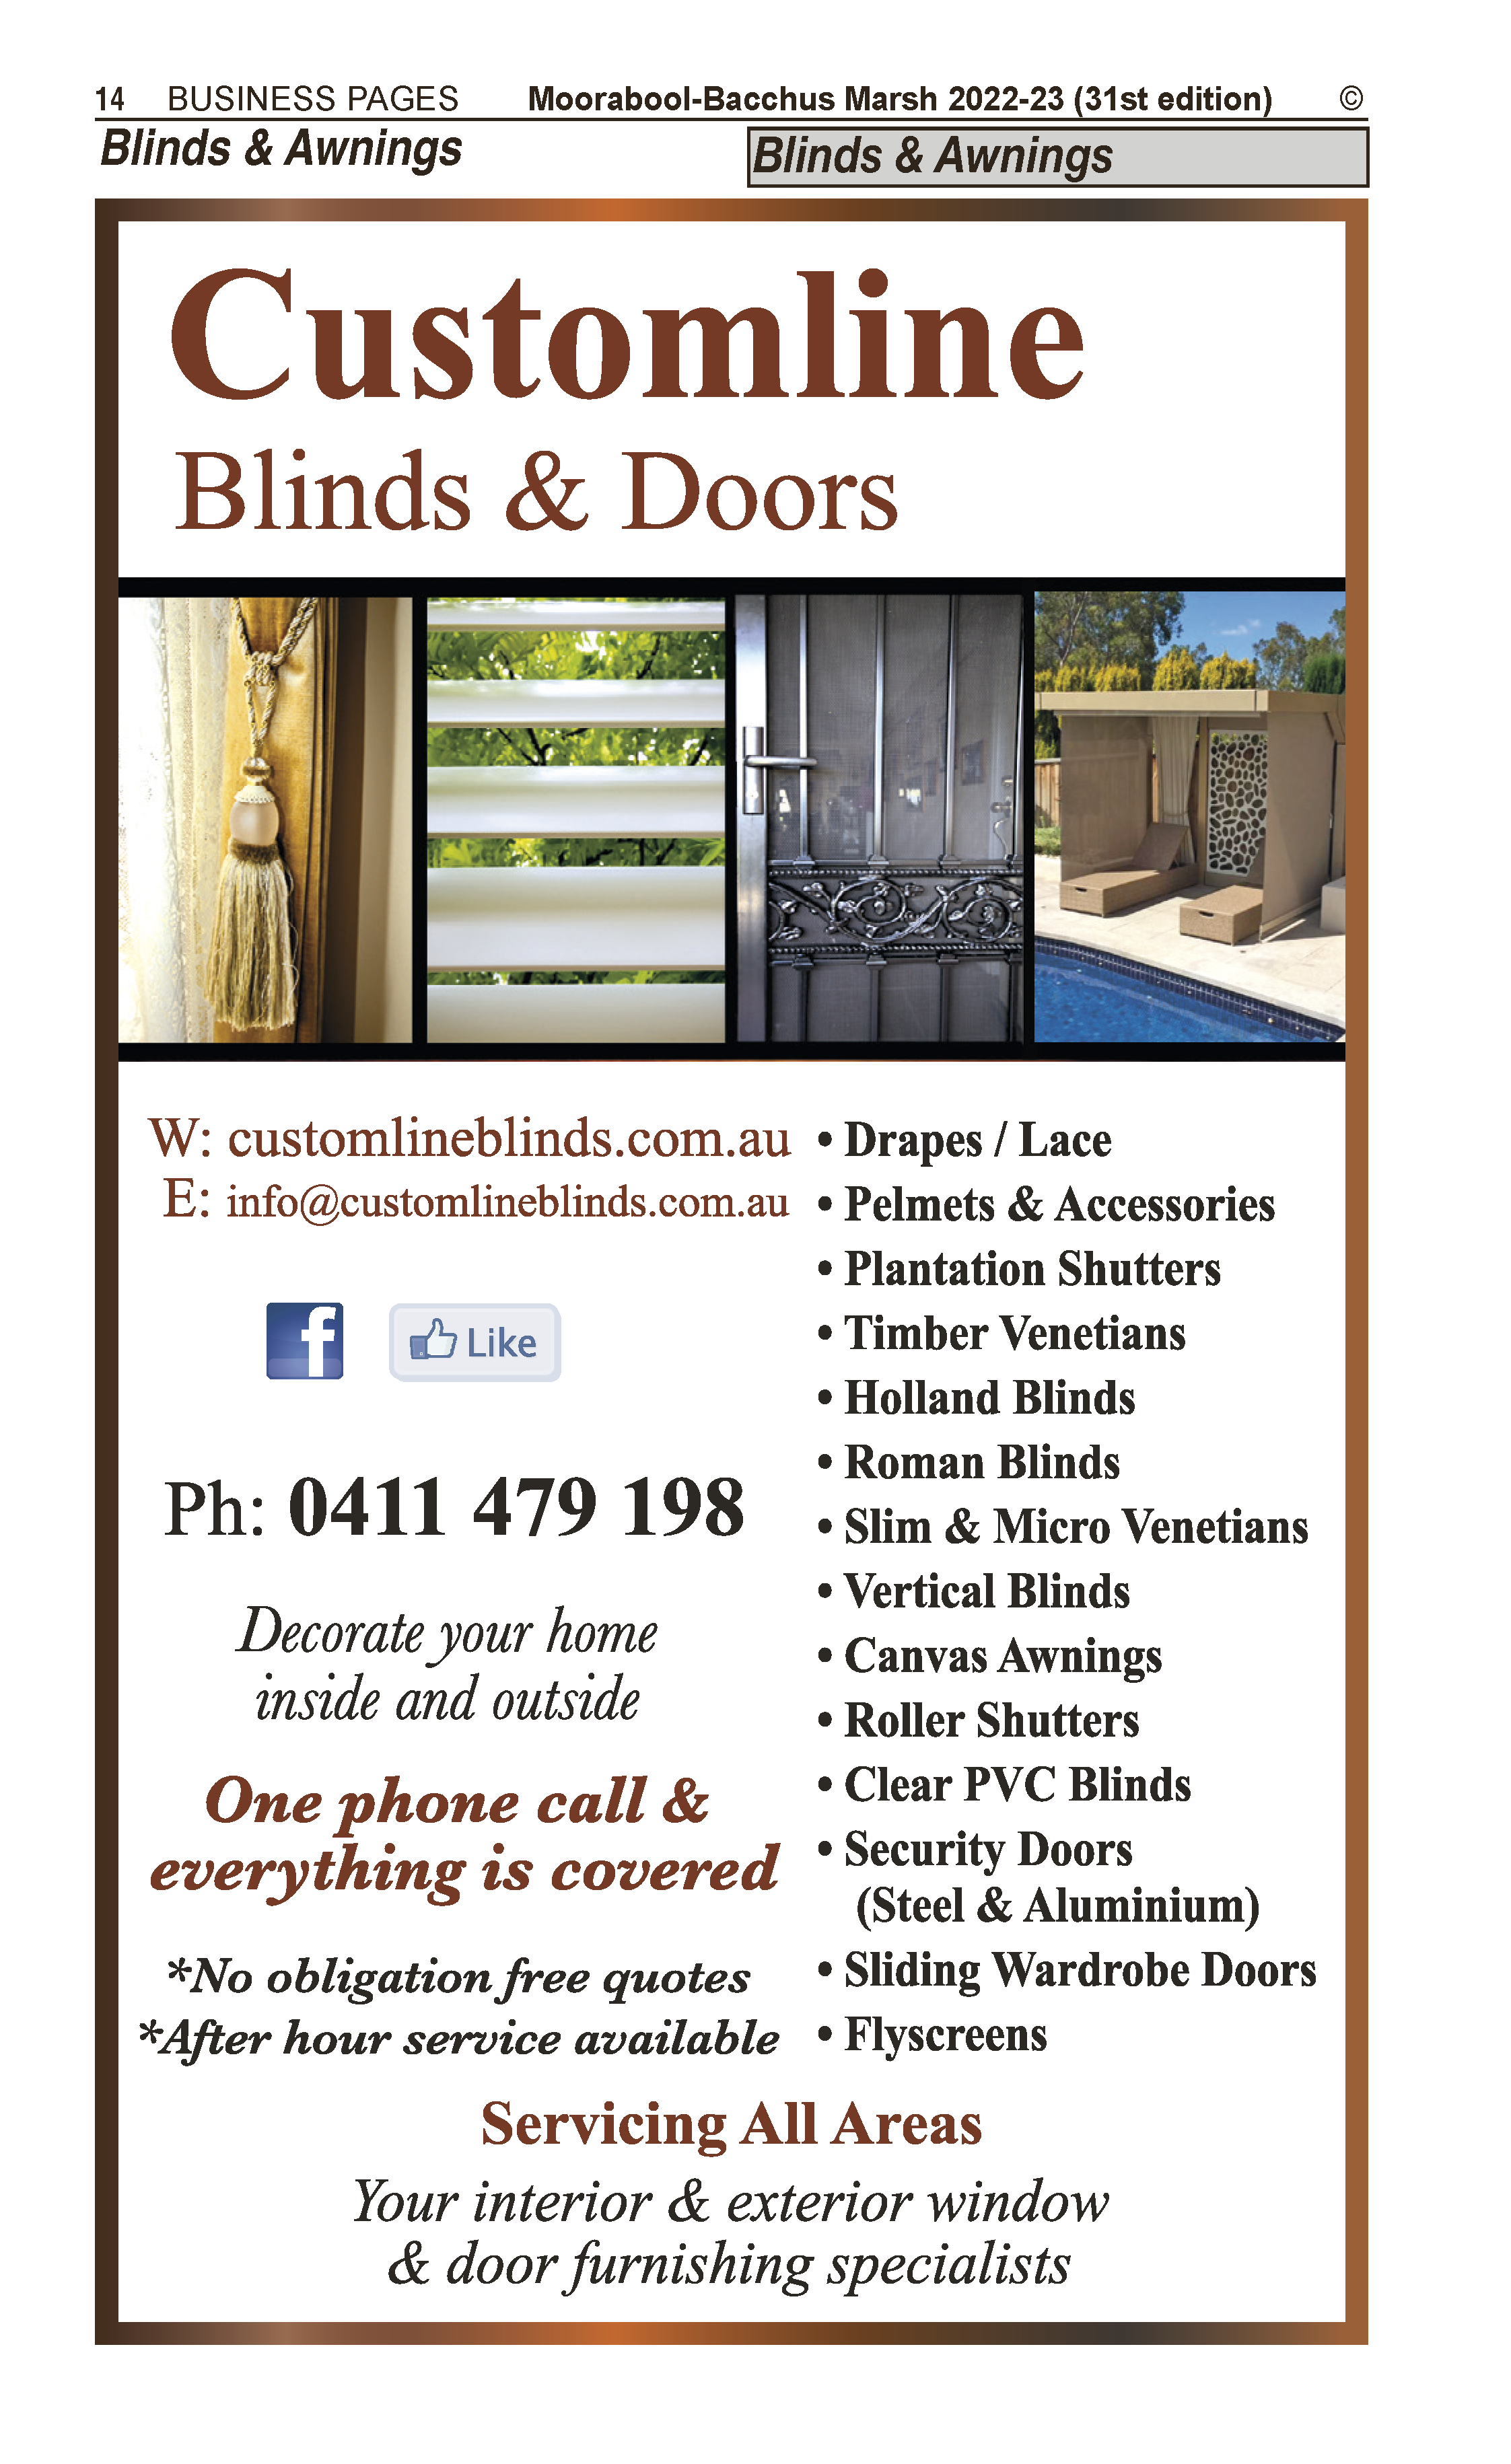 Account(able) Home Loans & Finance Pty Ltd | Banks, Finance, Mortgages in Bacchus Marsh | PBezy Pocket Books local directories - page 14